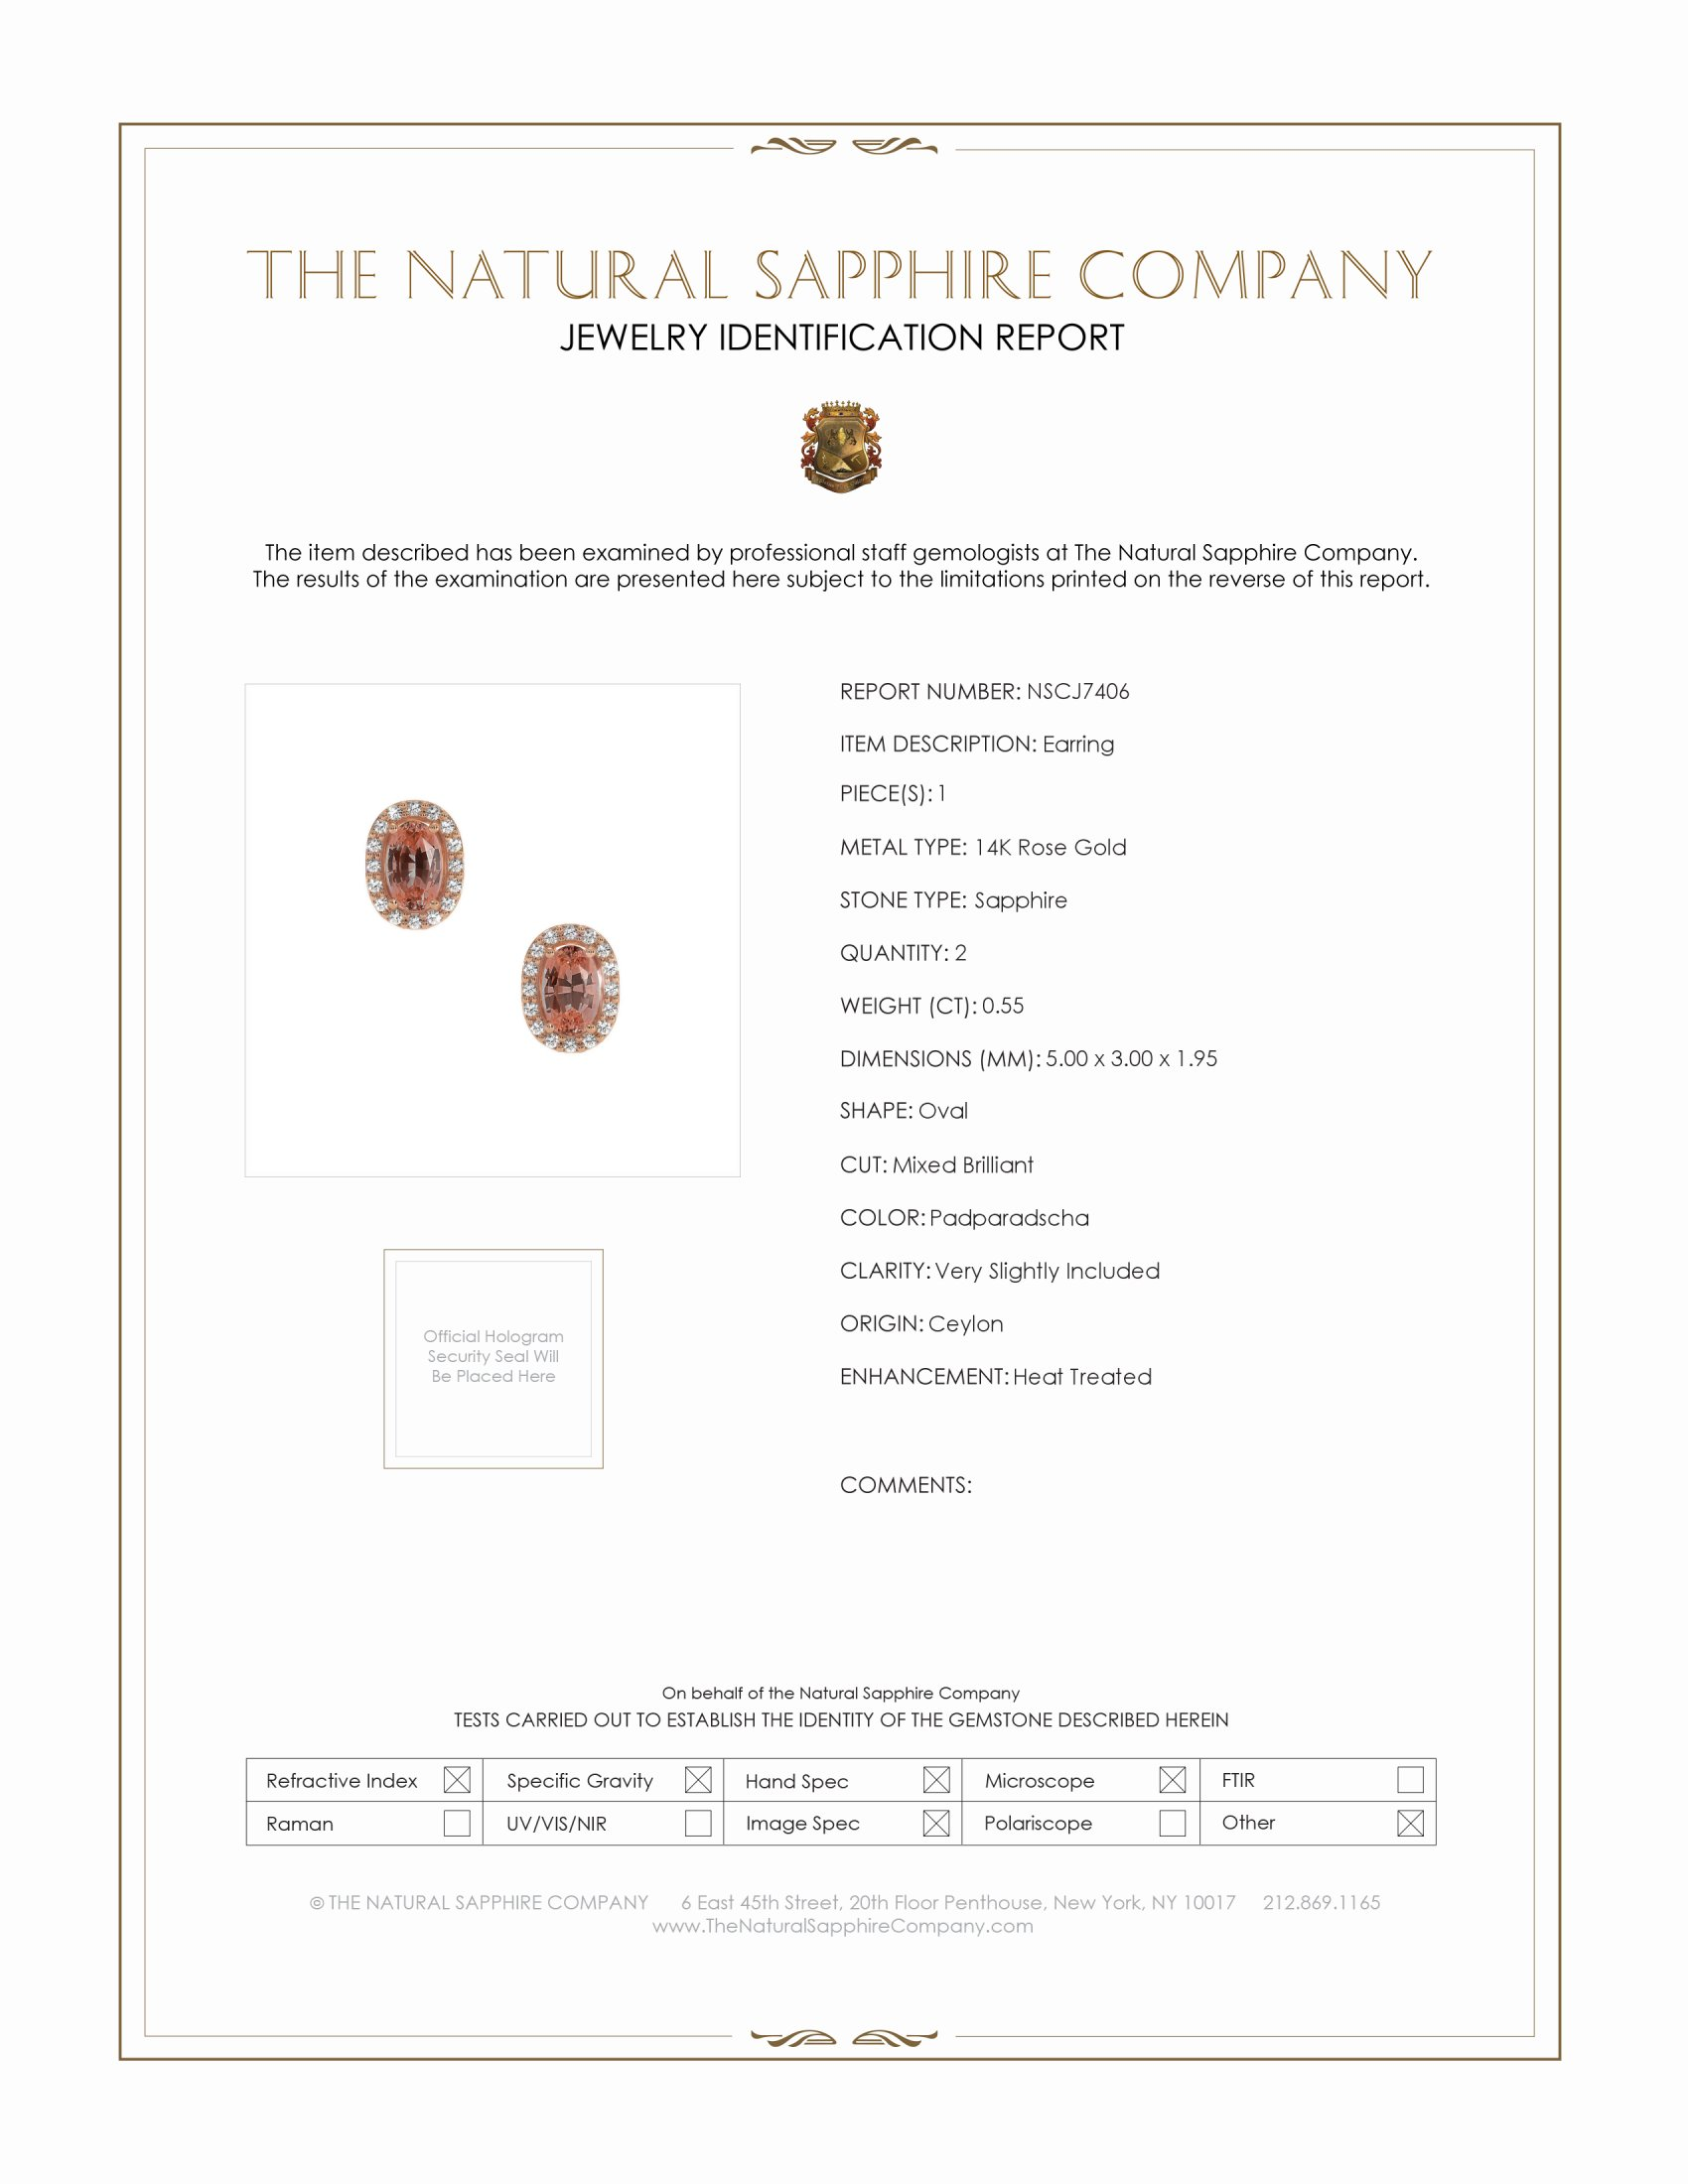 0.55ct Padparadscha Sapphire Earring Certification